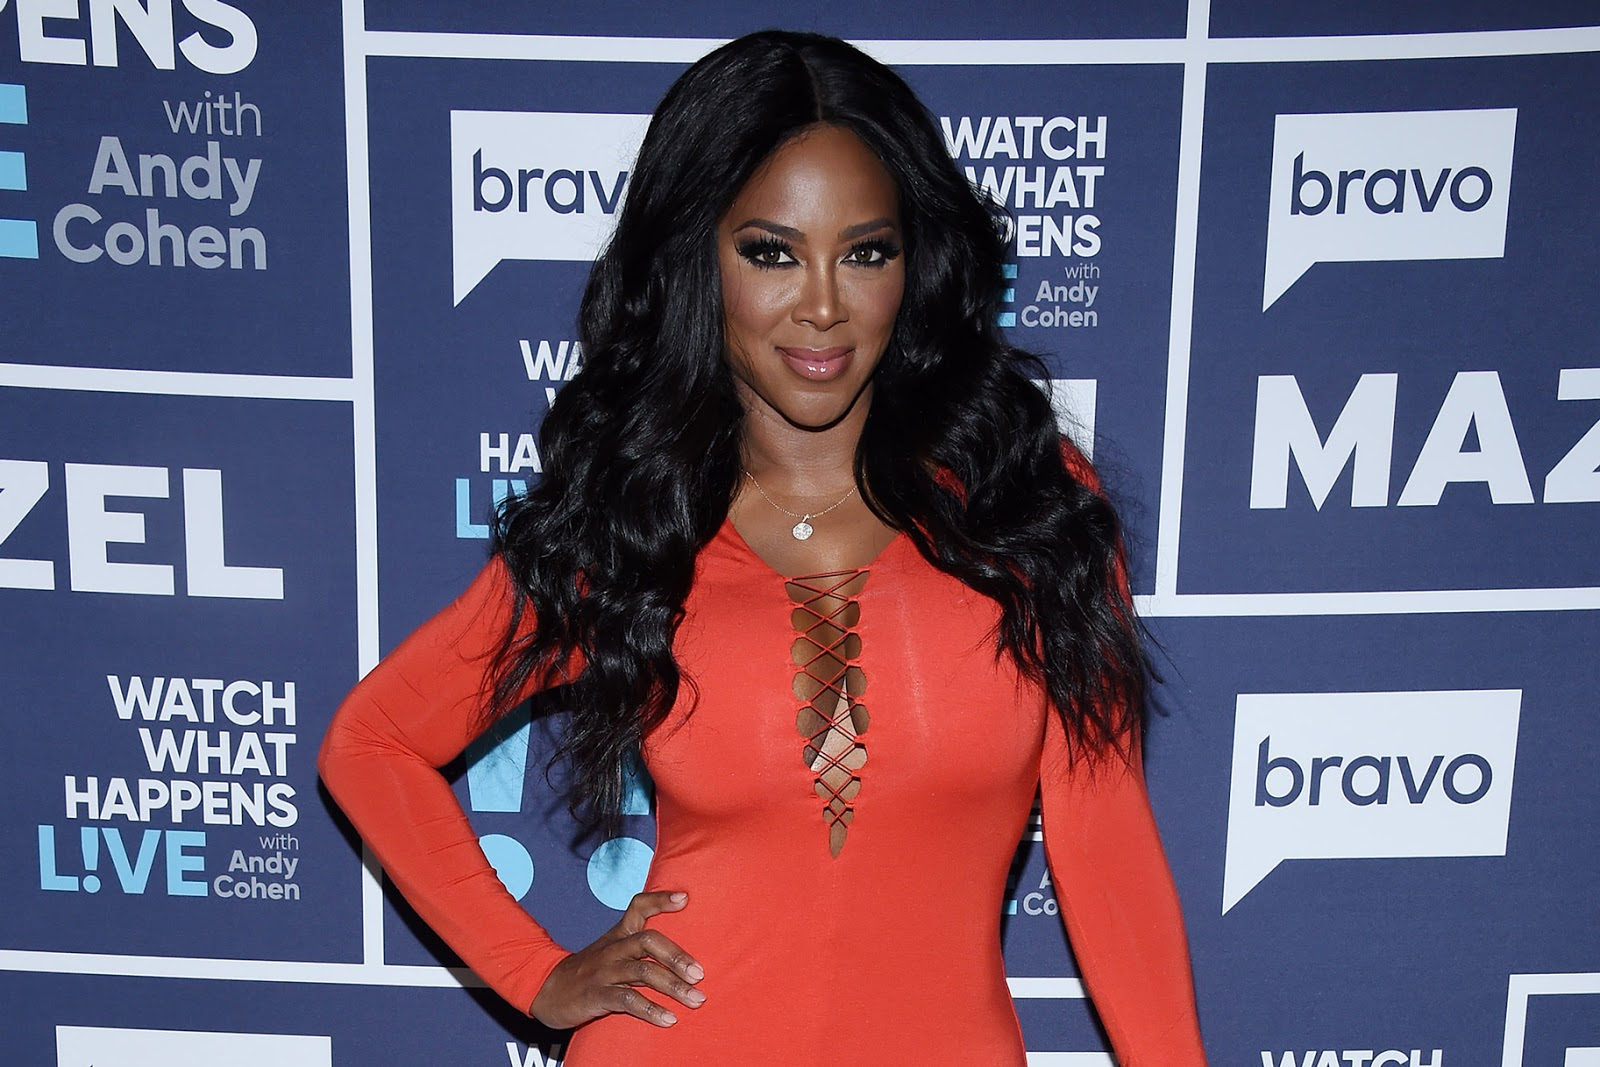 https://celebrityinsider.org/kenya-moore-reveals-the-best-thing-about-her-greece-vacay-her-pics-make-some-fans-cry-381101/